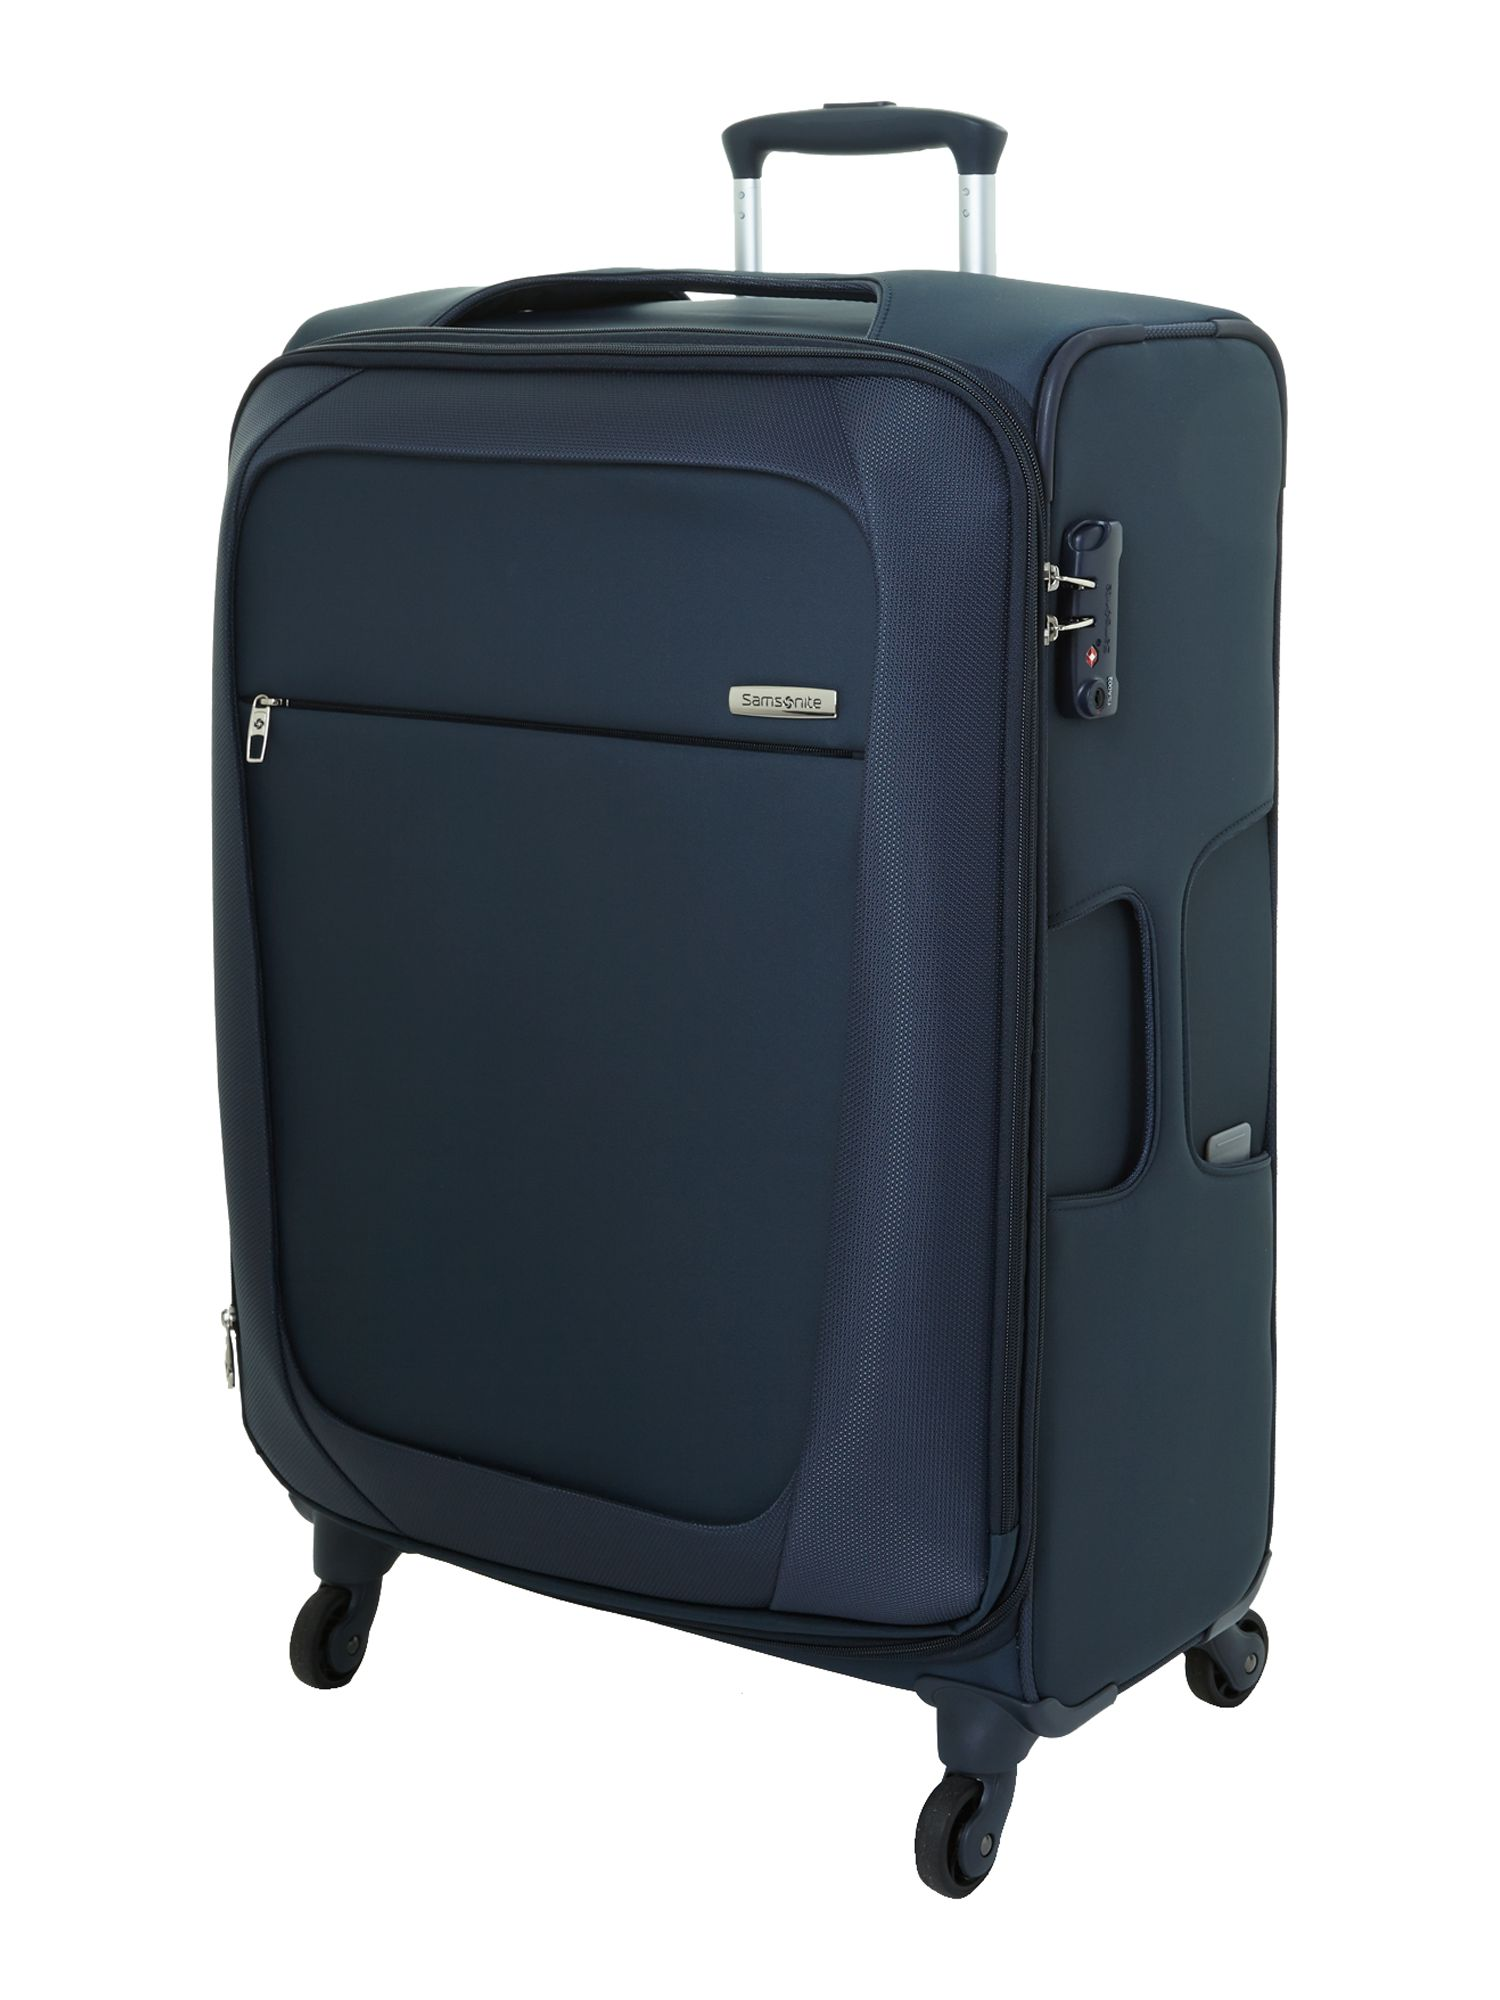 New B-Lite 4-wheel blue medium suitcase